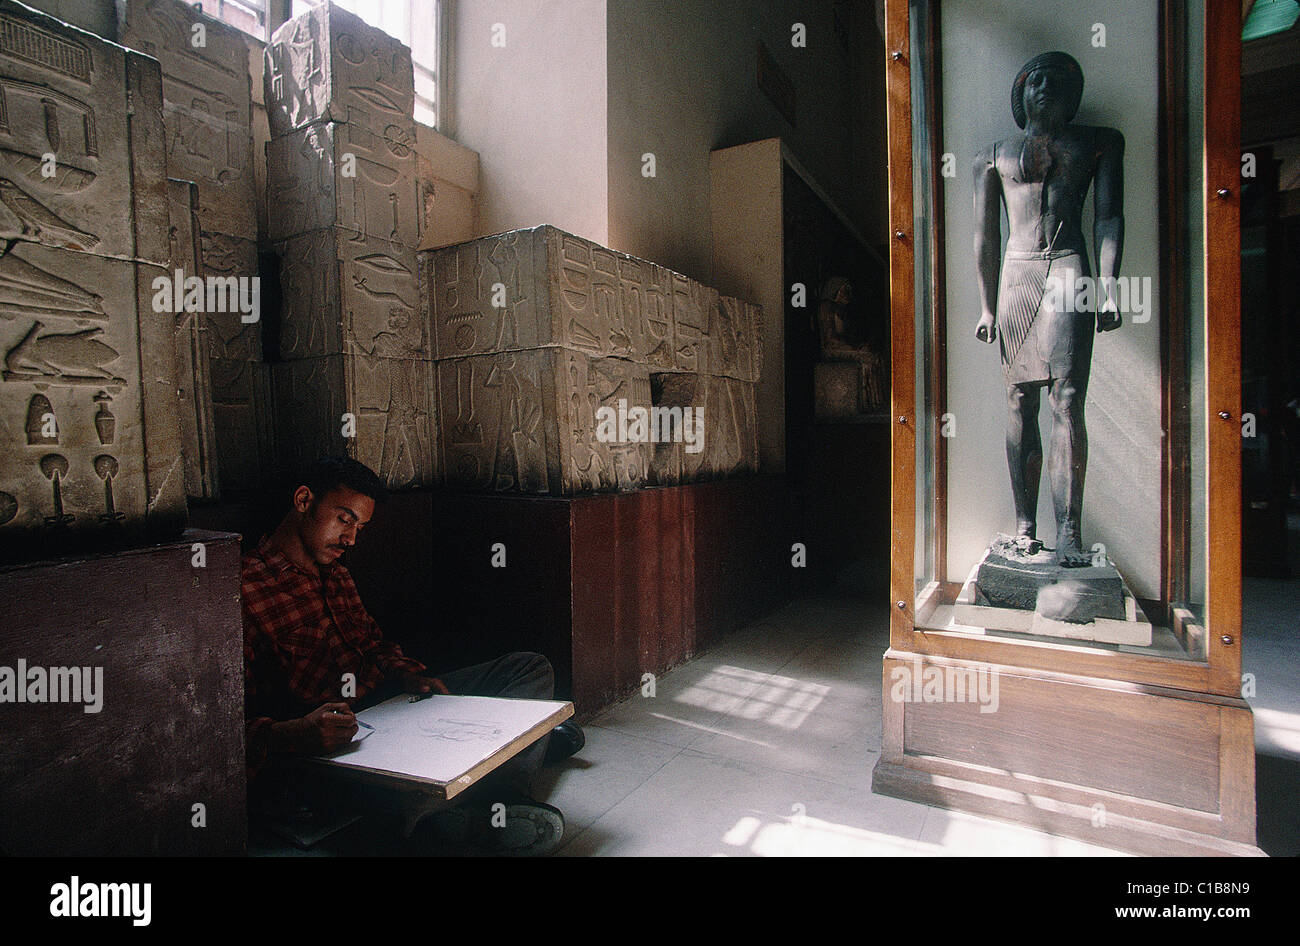 Egypt, Cairo, Antiquity museum Student drawing a stele - Stock Image